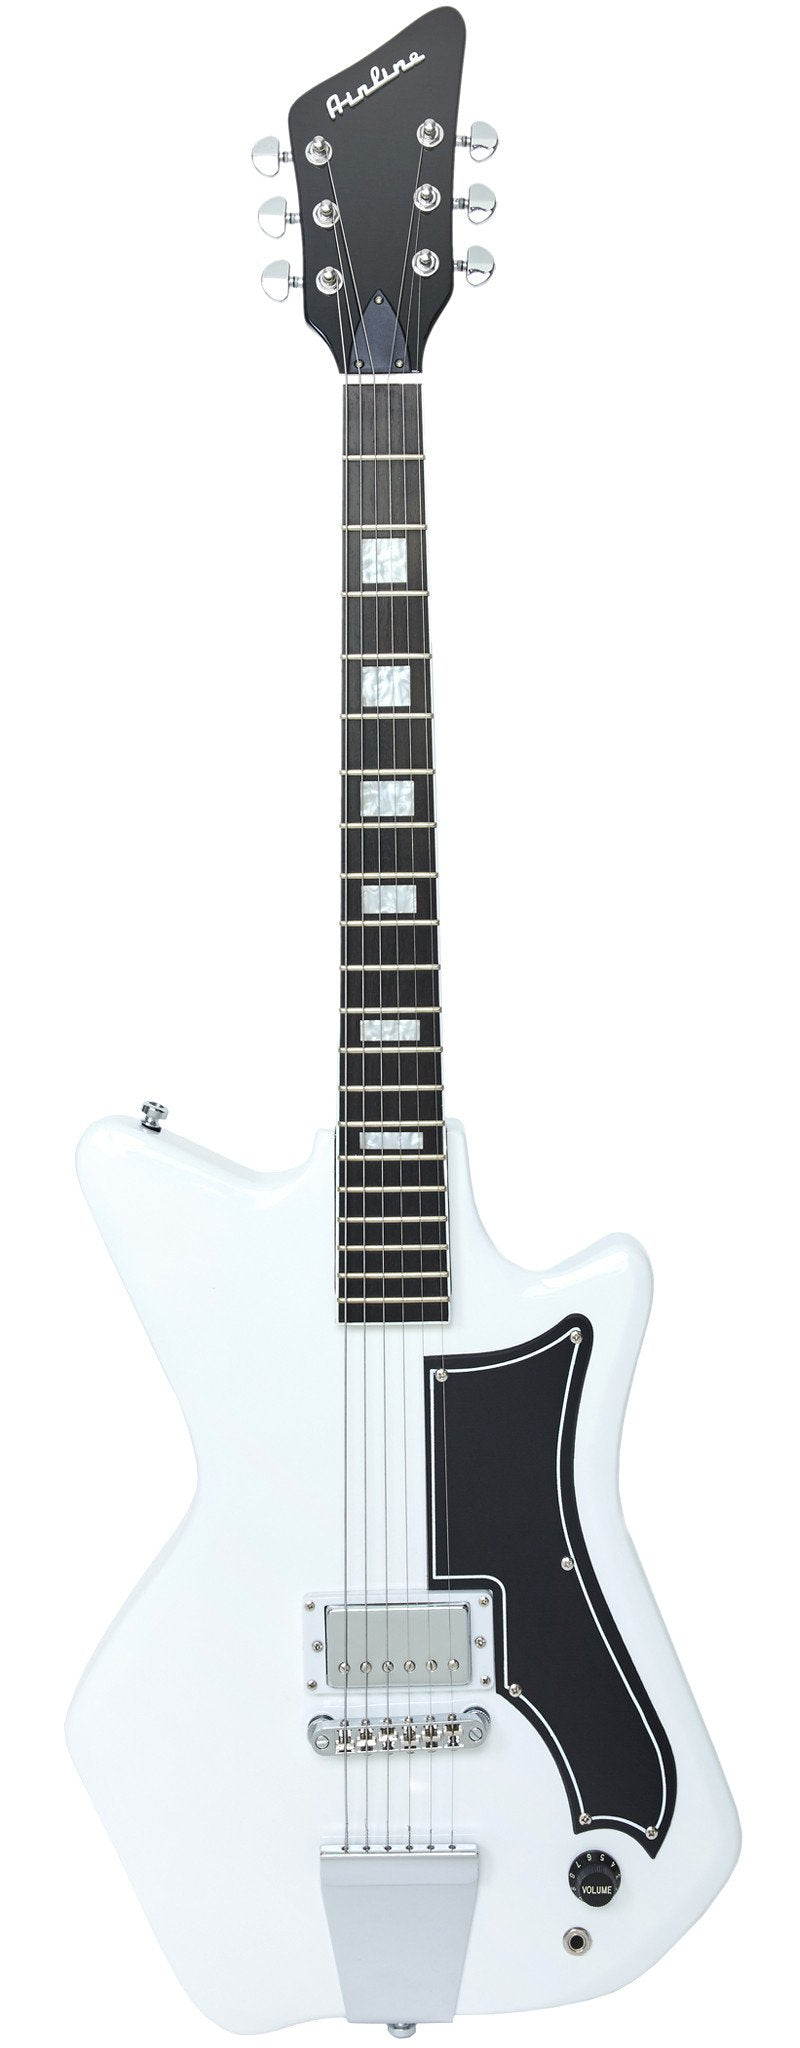 Eastwood Guitars Airline Jetsons Jr White Full Front